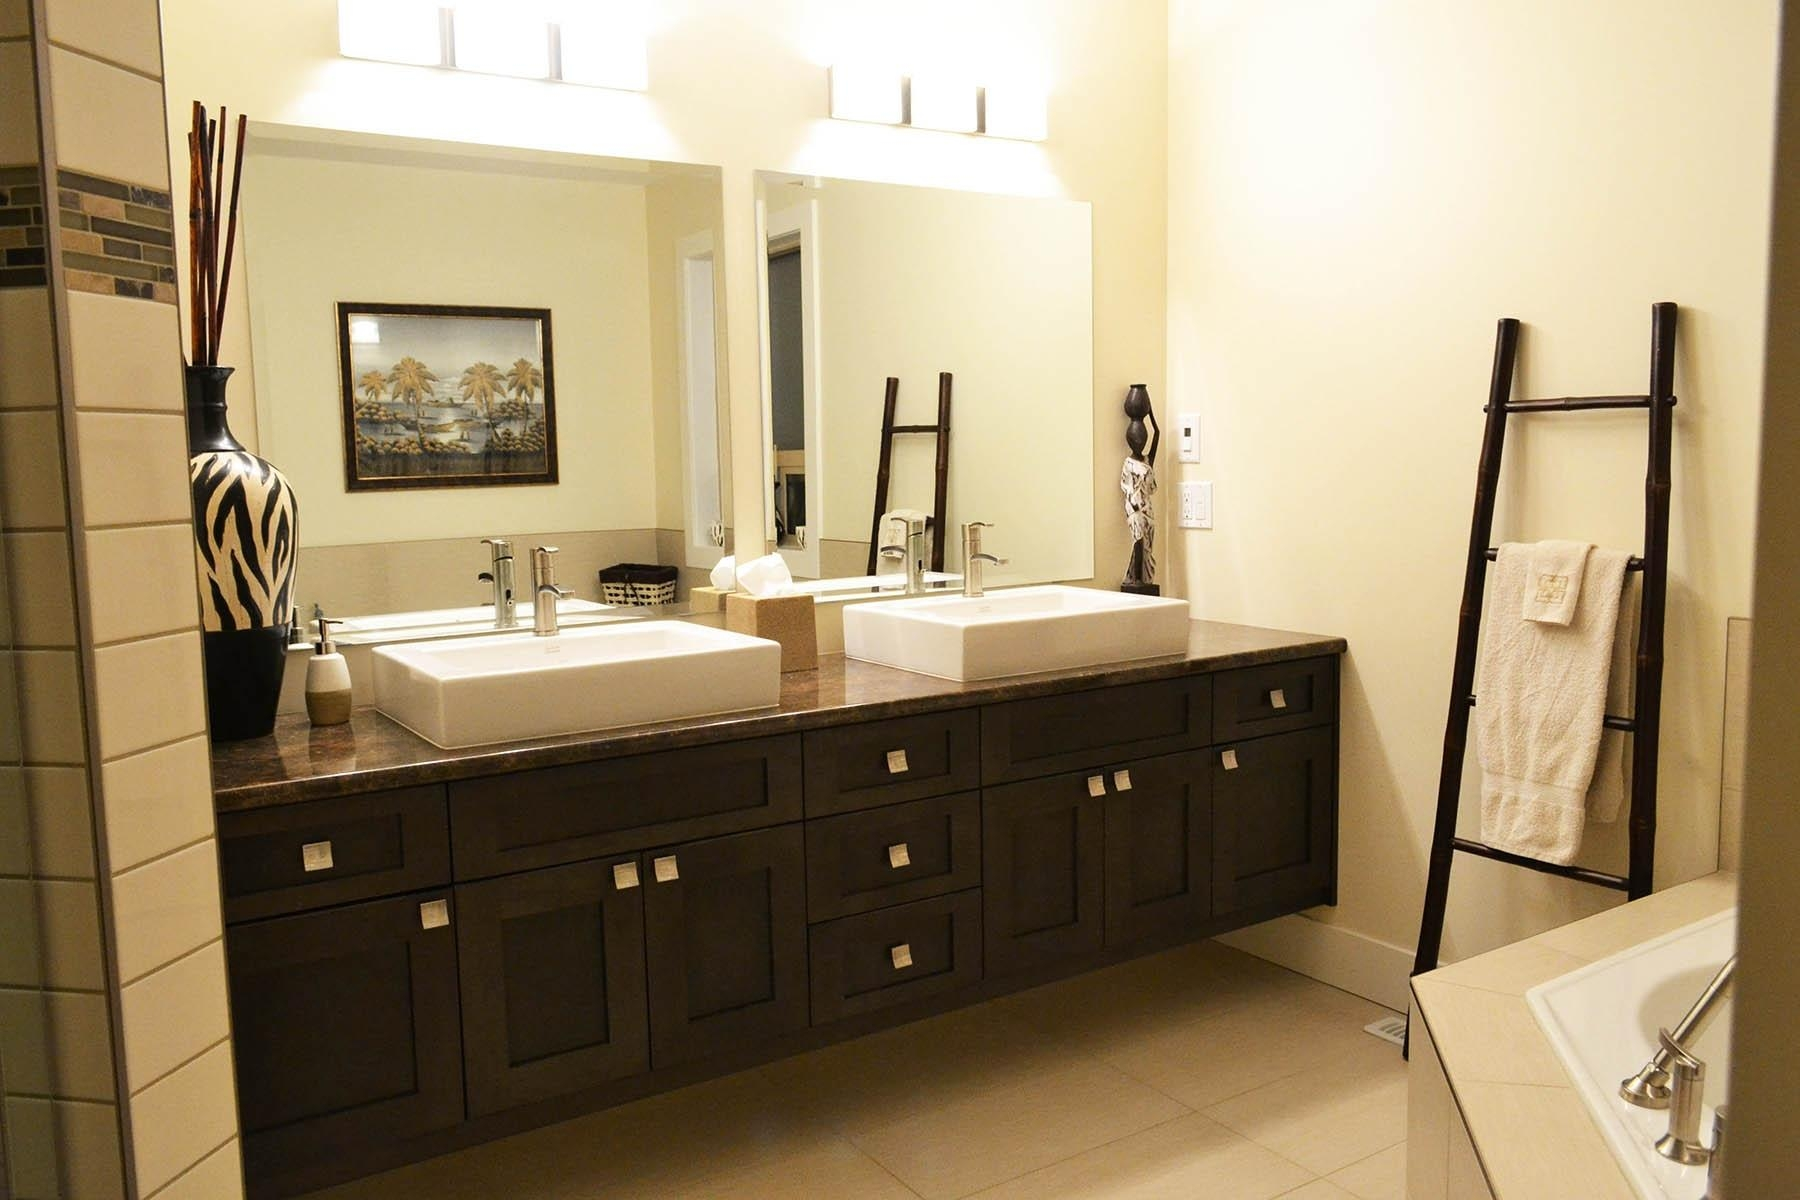 Bathroom Cabinets : Vibrant Creative Double Bathroom Cabinets With Double Vanity Bathroom Mirrors (Image 4 of 20)